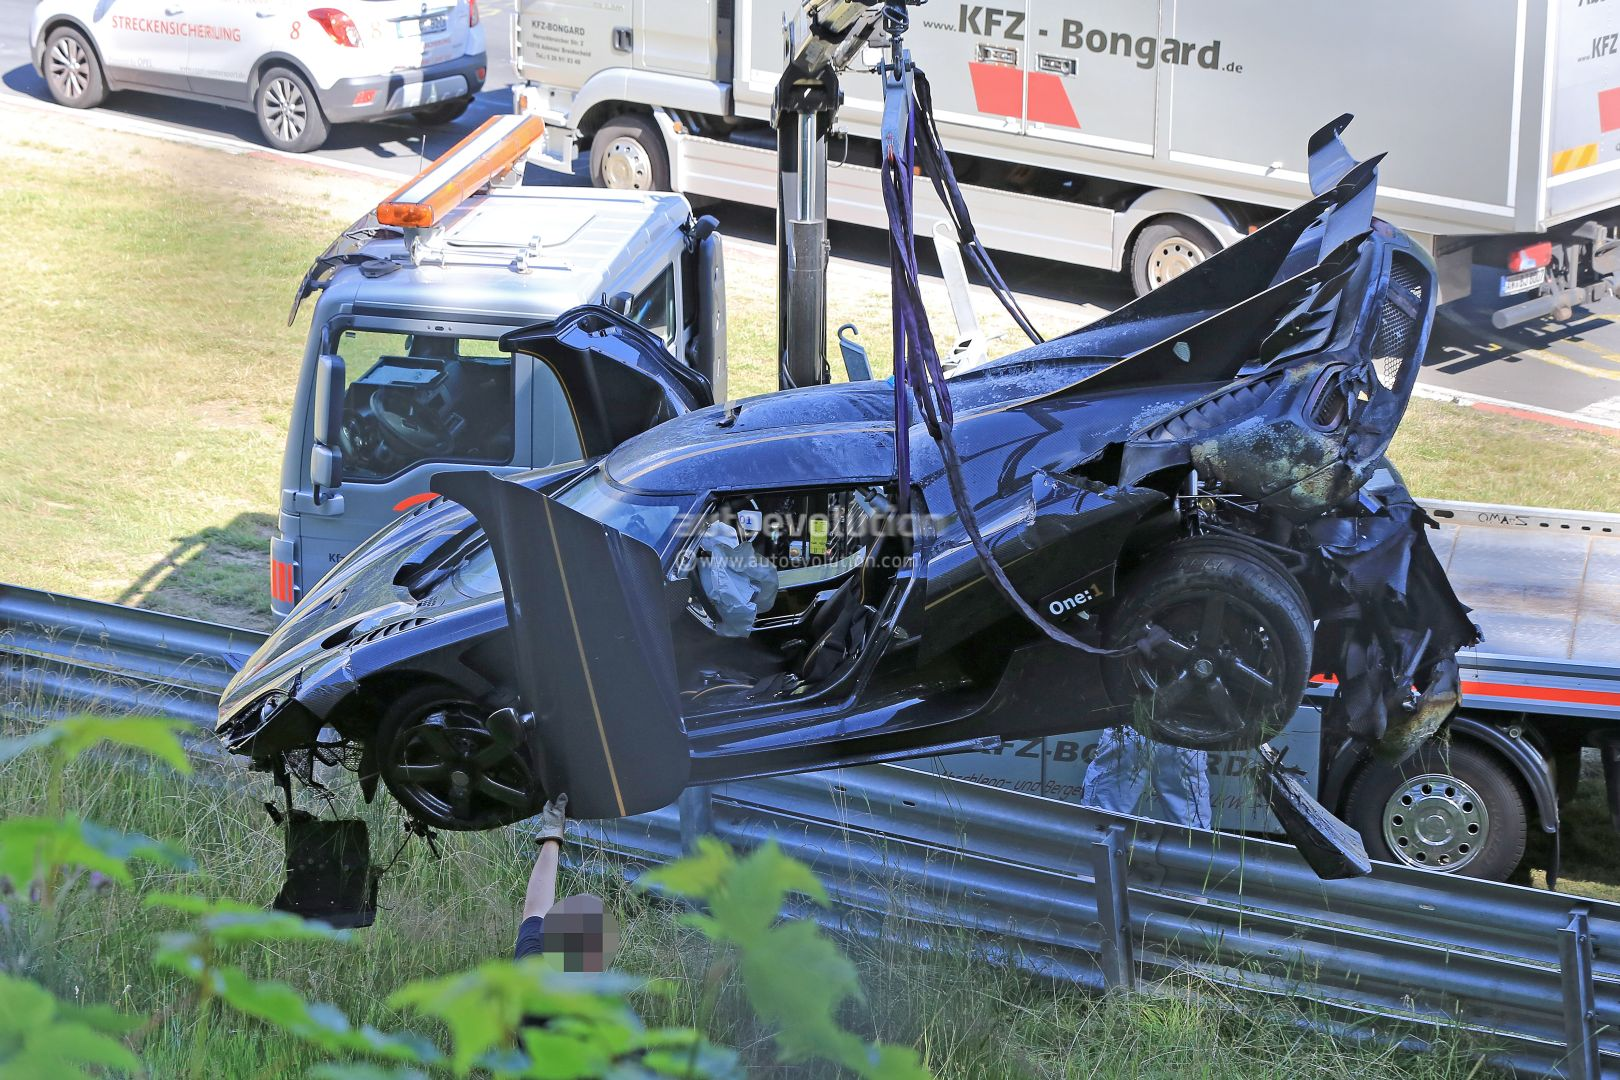 Update Koenigsegg One 1 Destroyed In Nurburgring Crash Hypercar Caught Fire Autoevolution